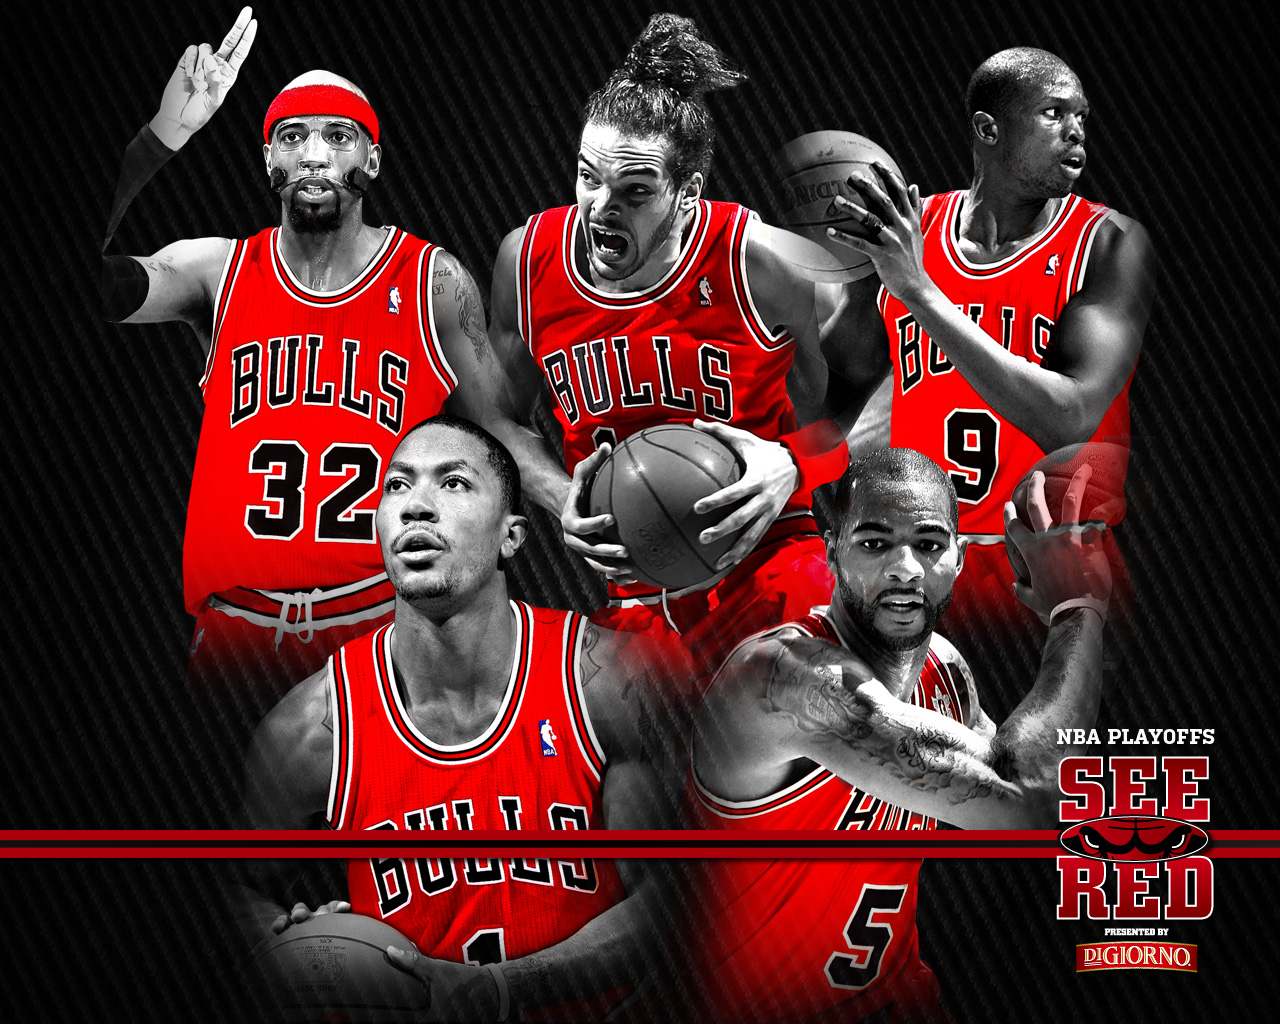 2012 playoffs see red wallpaper chicago bulls voltagebd Images